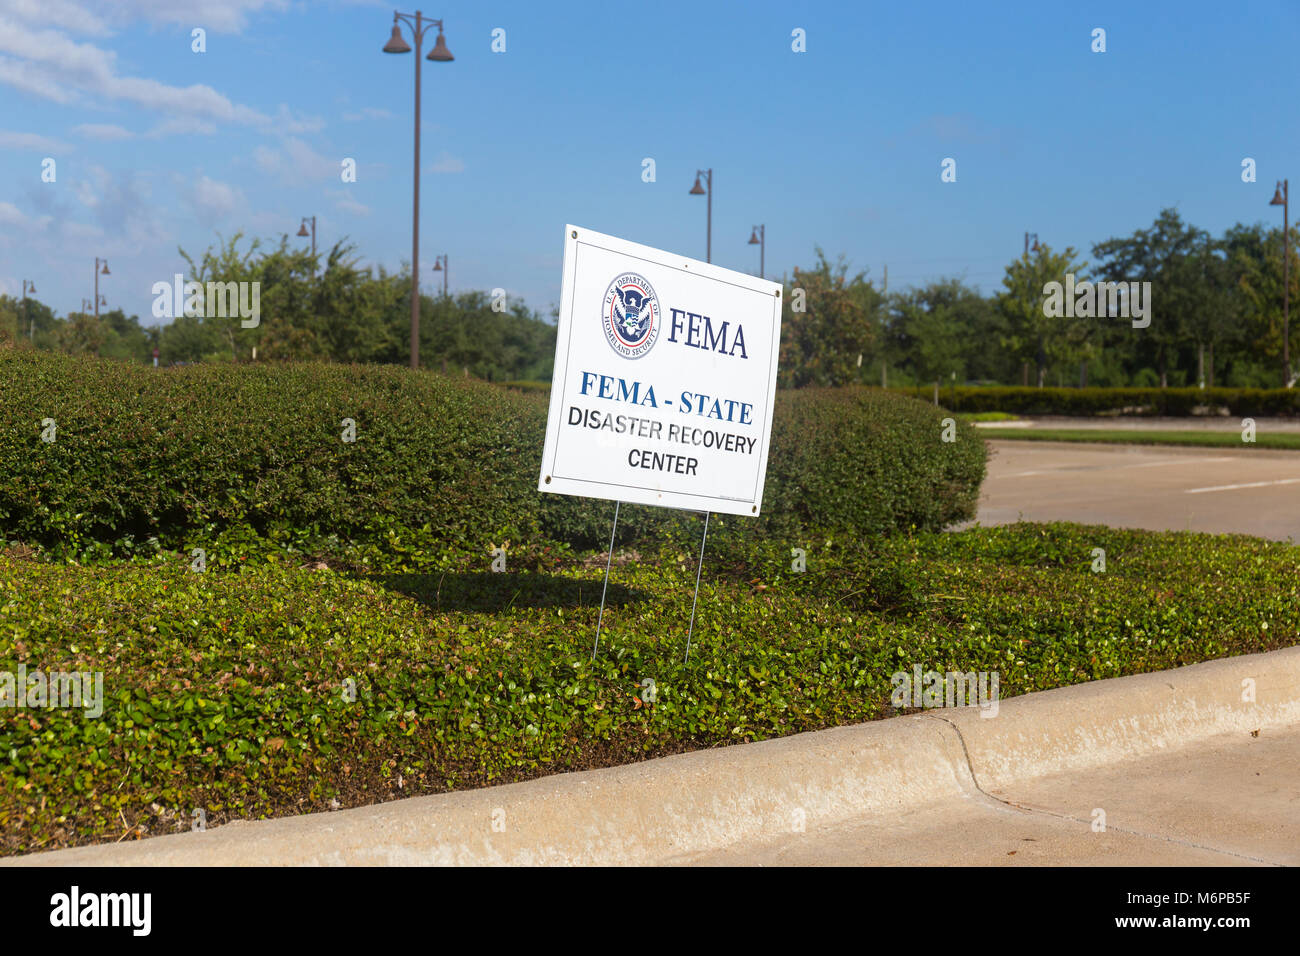 Signs posted direct residents to a FEMA Disaster Recovery Center - Stock Image